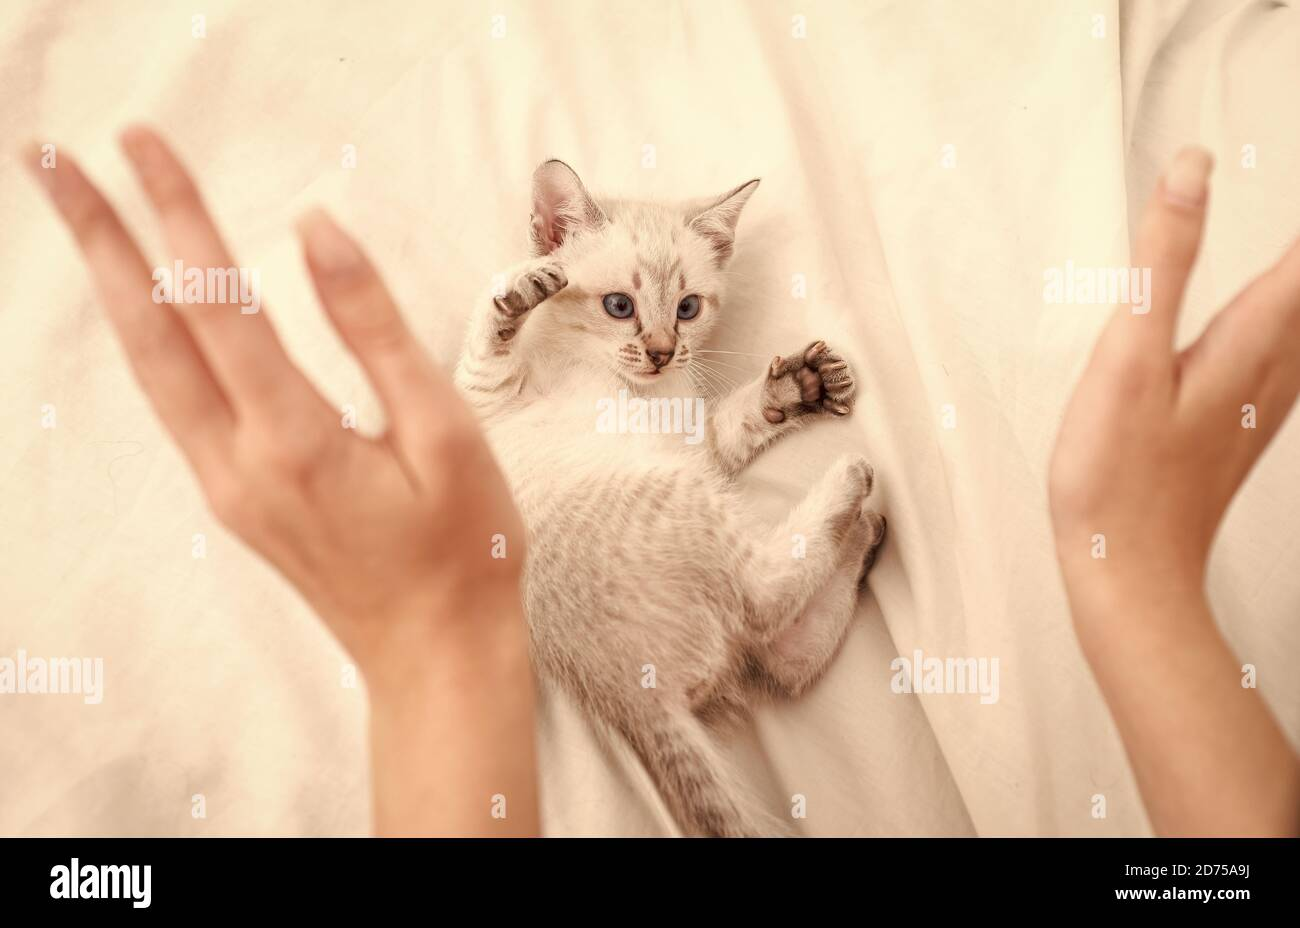 Page 3 Vet Bed High Resolution Stock Photography And Images Alamy